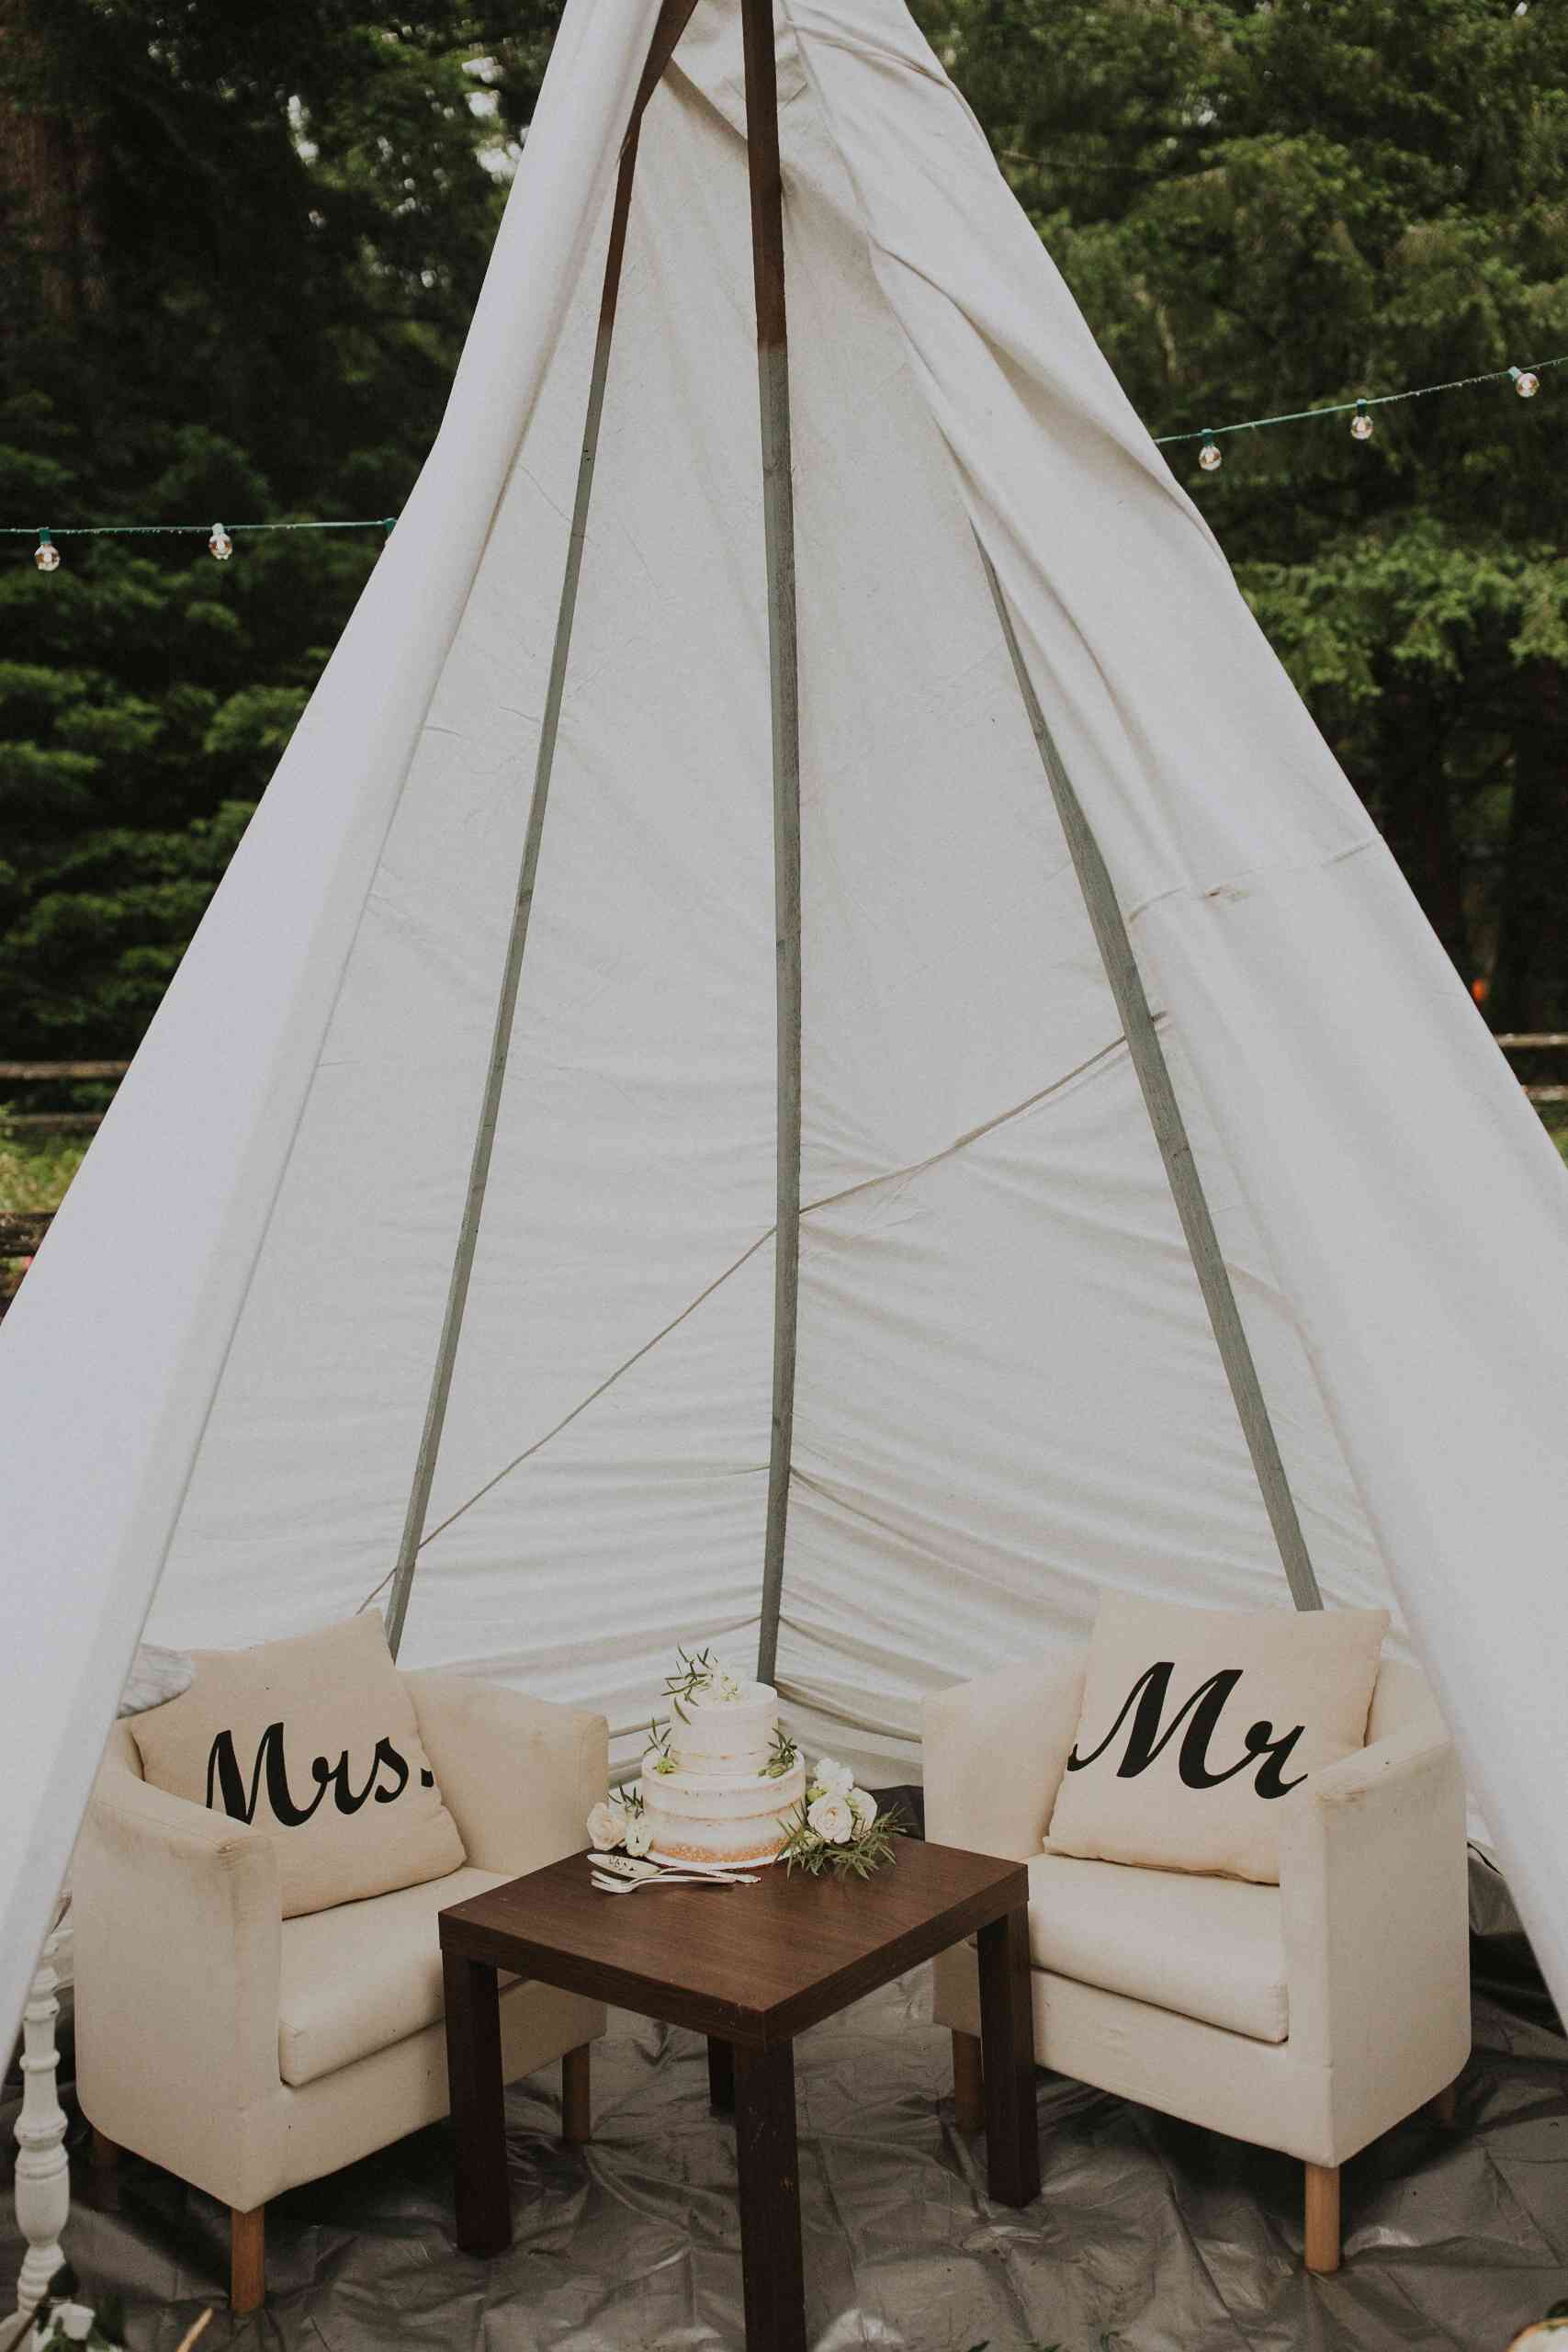 Tent and chairs with Mr. and Mrs. pillows.